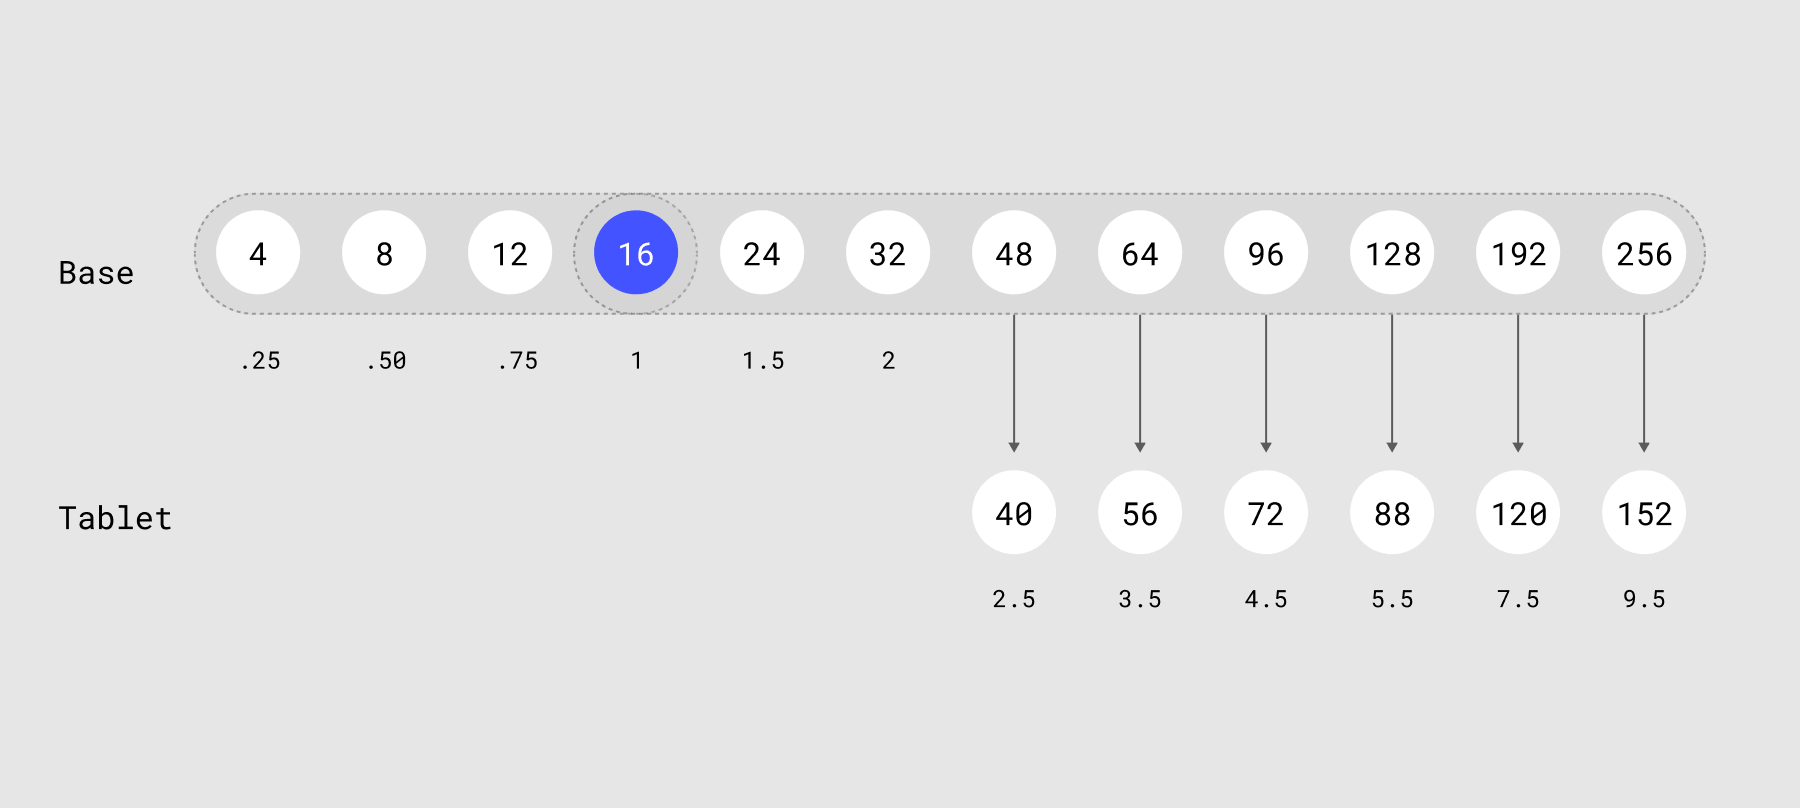 Scale values for Webflow's Tablet breakpoint